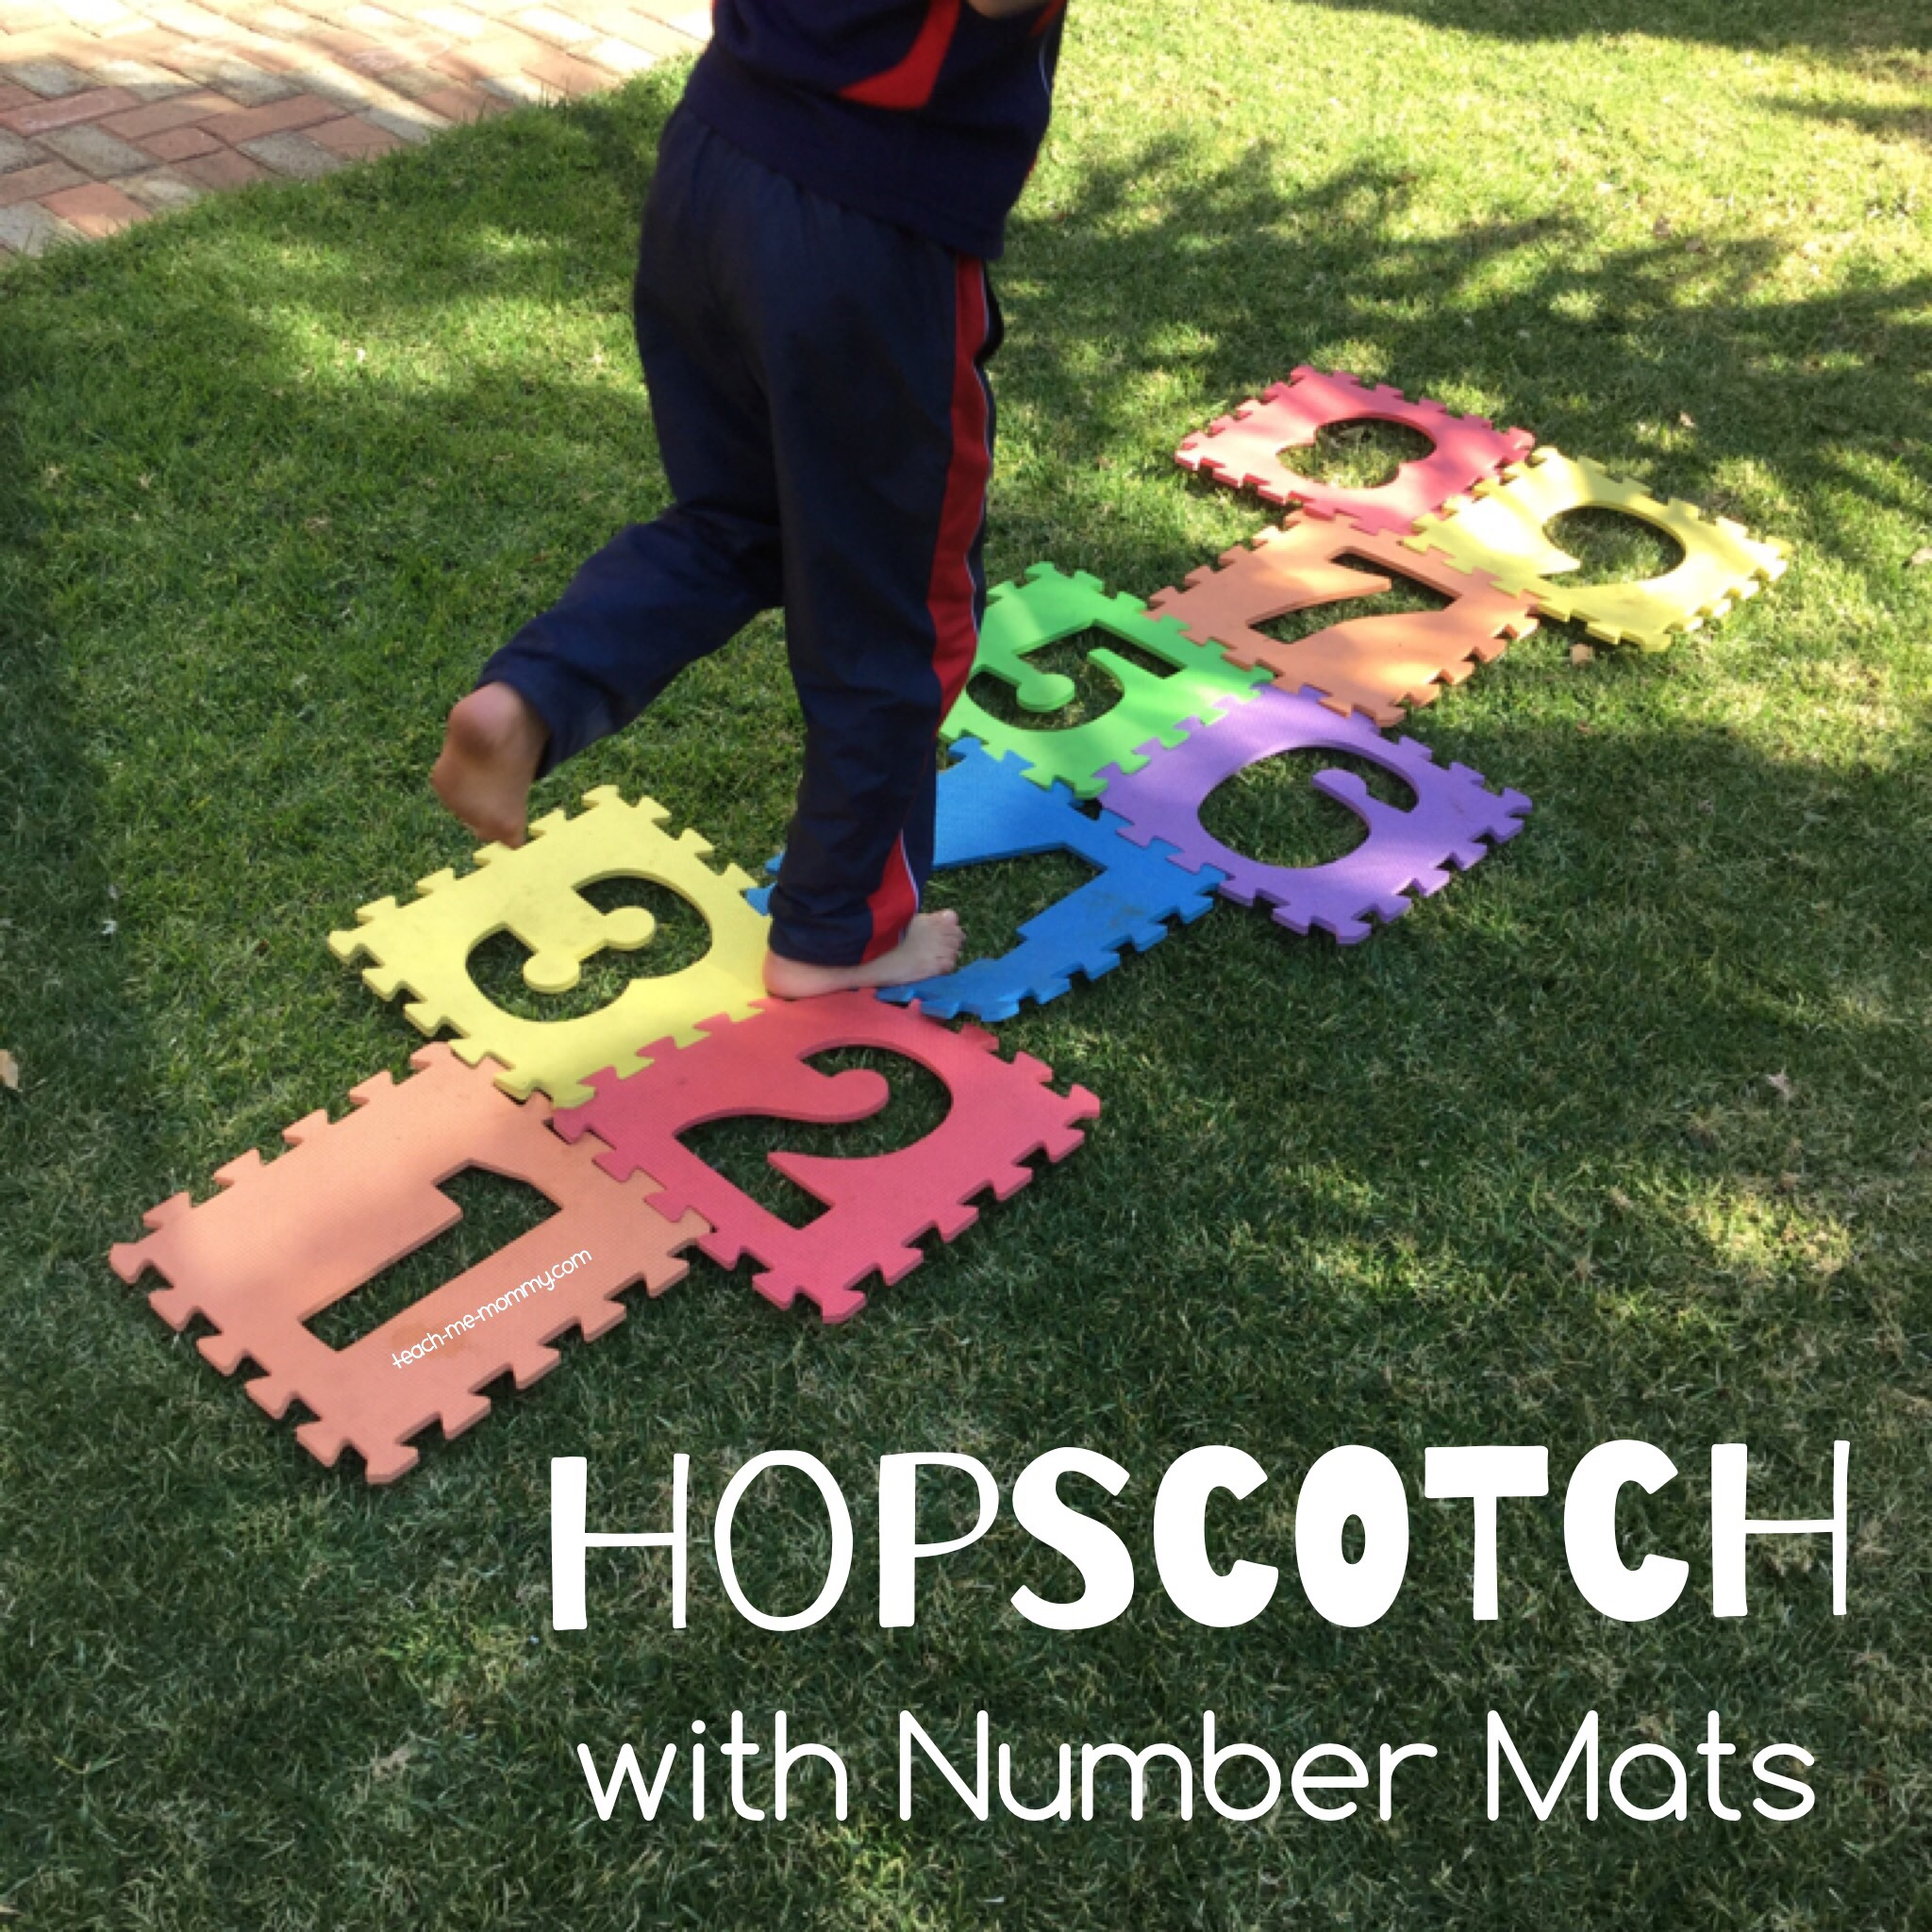 Hopscotch with Number Mats